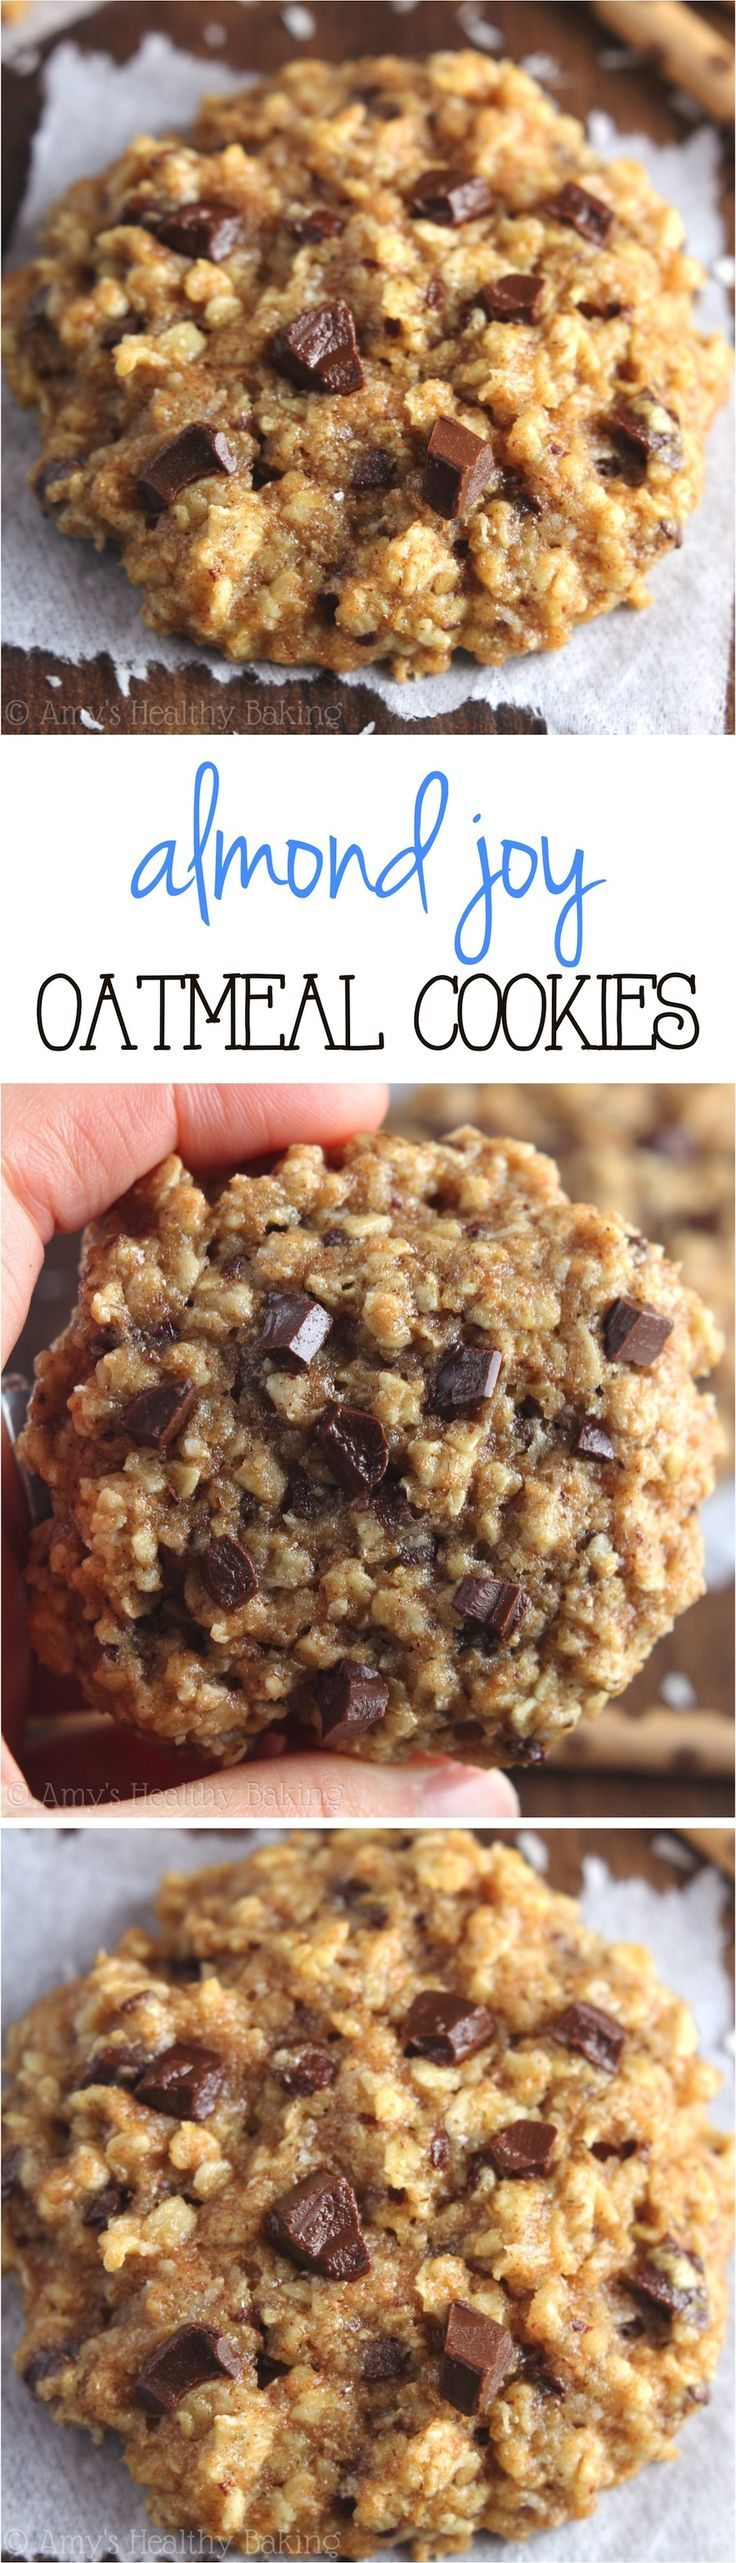 Clean Eating Almond Joy Oatmeal Cookies Recipe plus 28 more of the most pinned Clean Eating recipes.